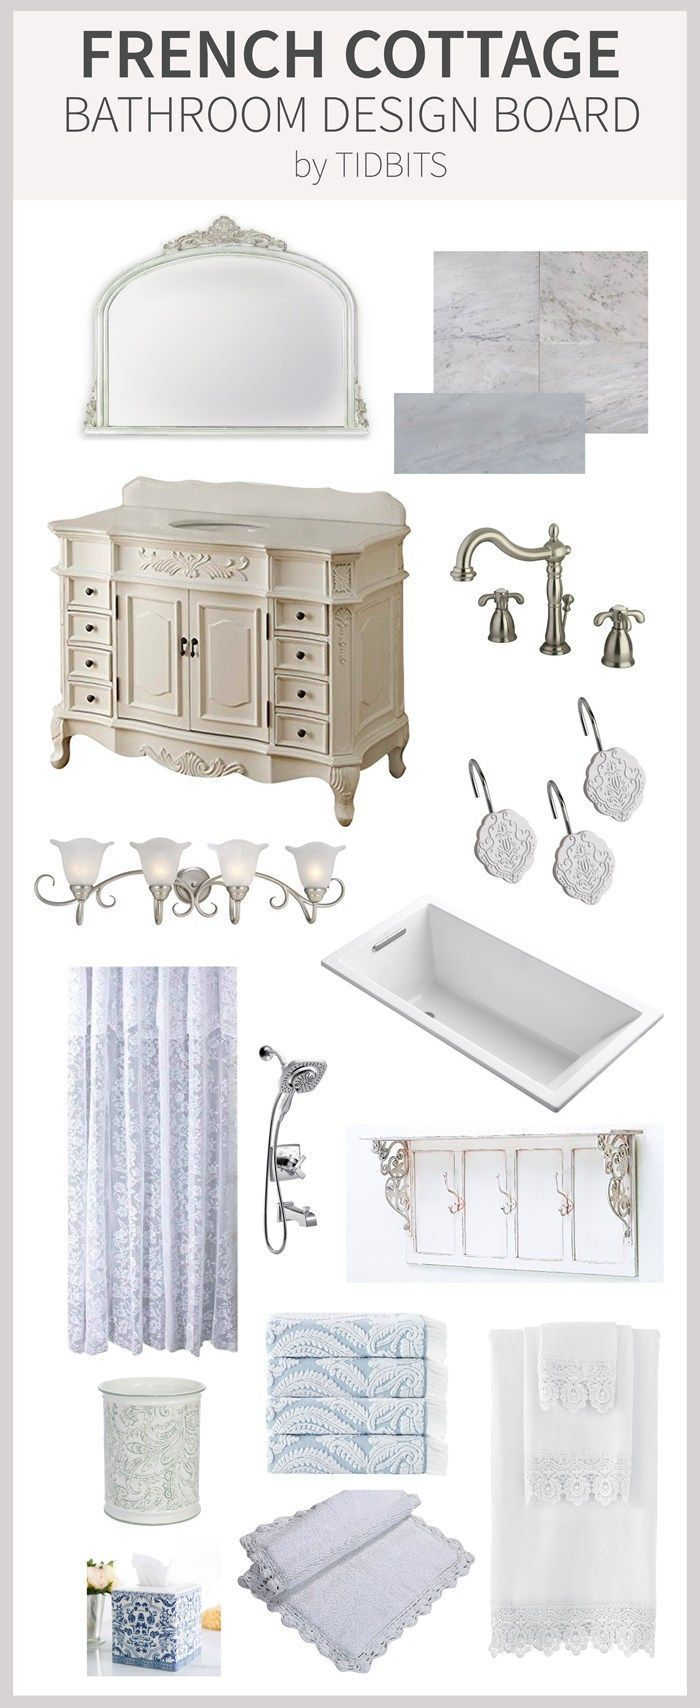 French Cottage Bathroom Design Board | DIY French Country Decor ...